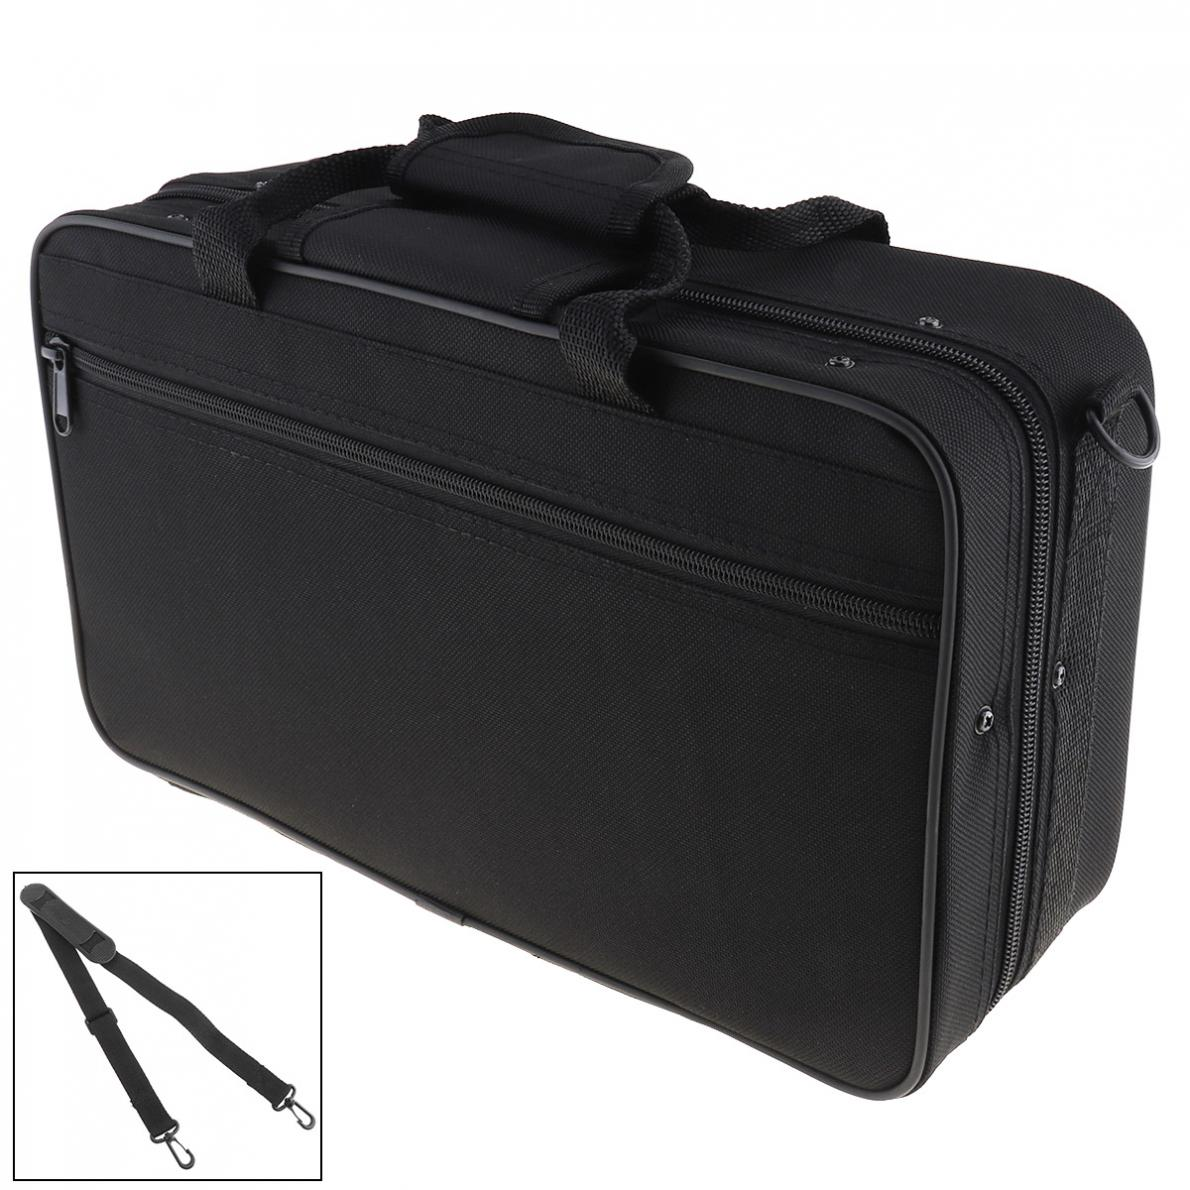 Oxford Cloth Gig Bag with waterproof and Adjustable Single Shoulder Strap Pocket Foam Cotton Padded for Clarinet